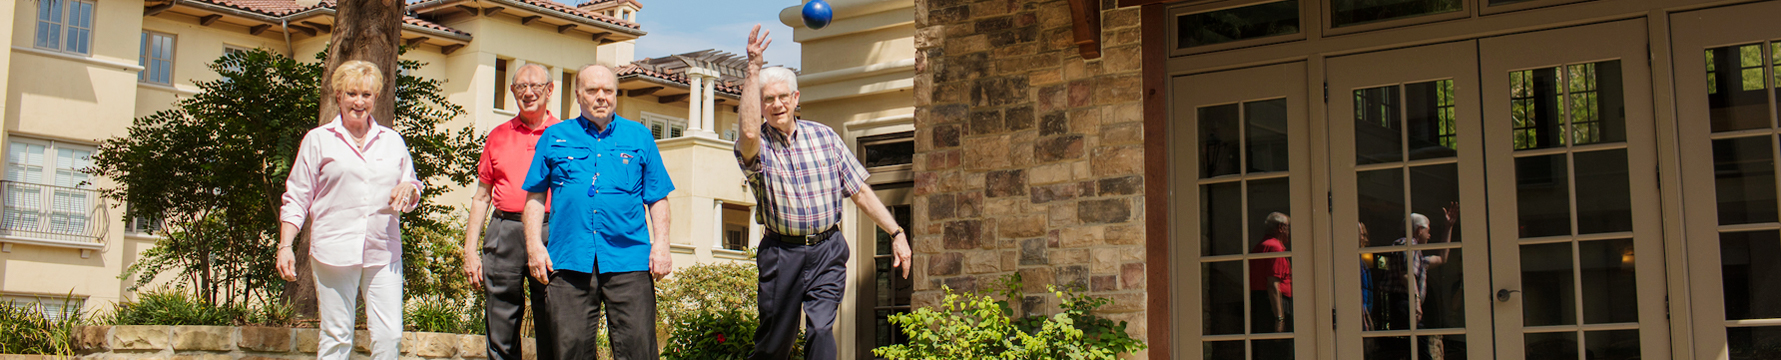 A group of seniors playing Bocce ball at Edgemere a senior living community in Texas